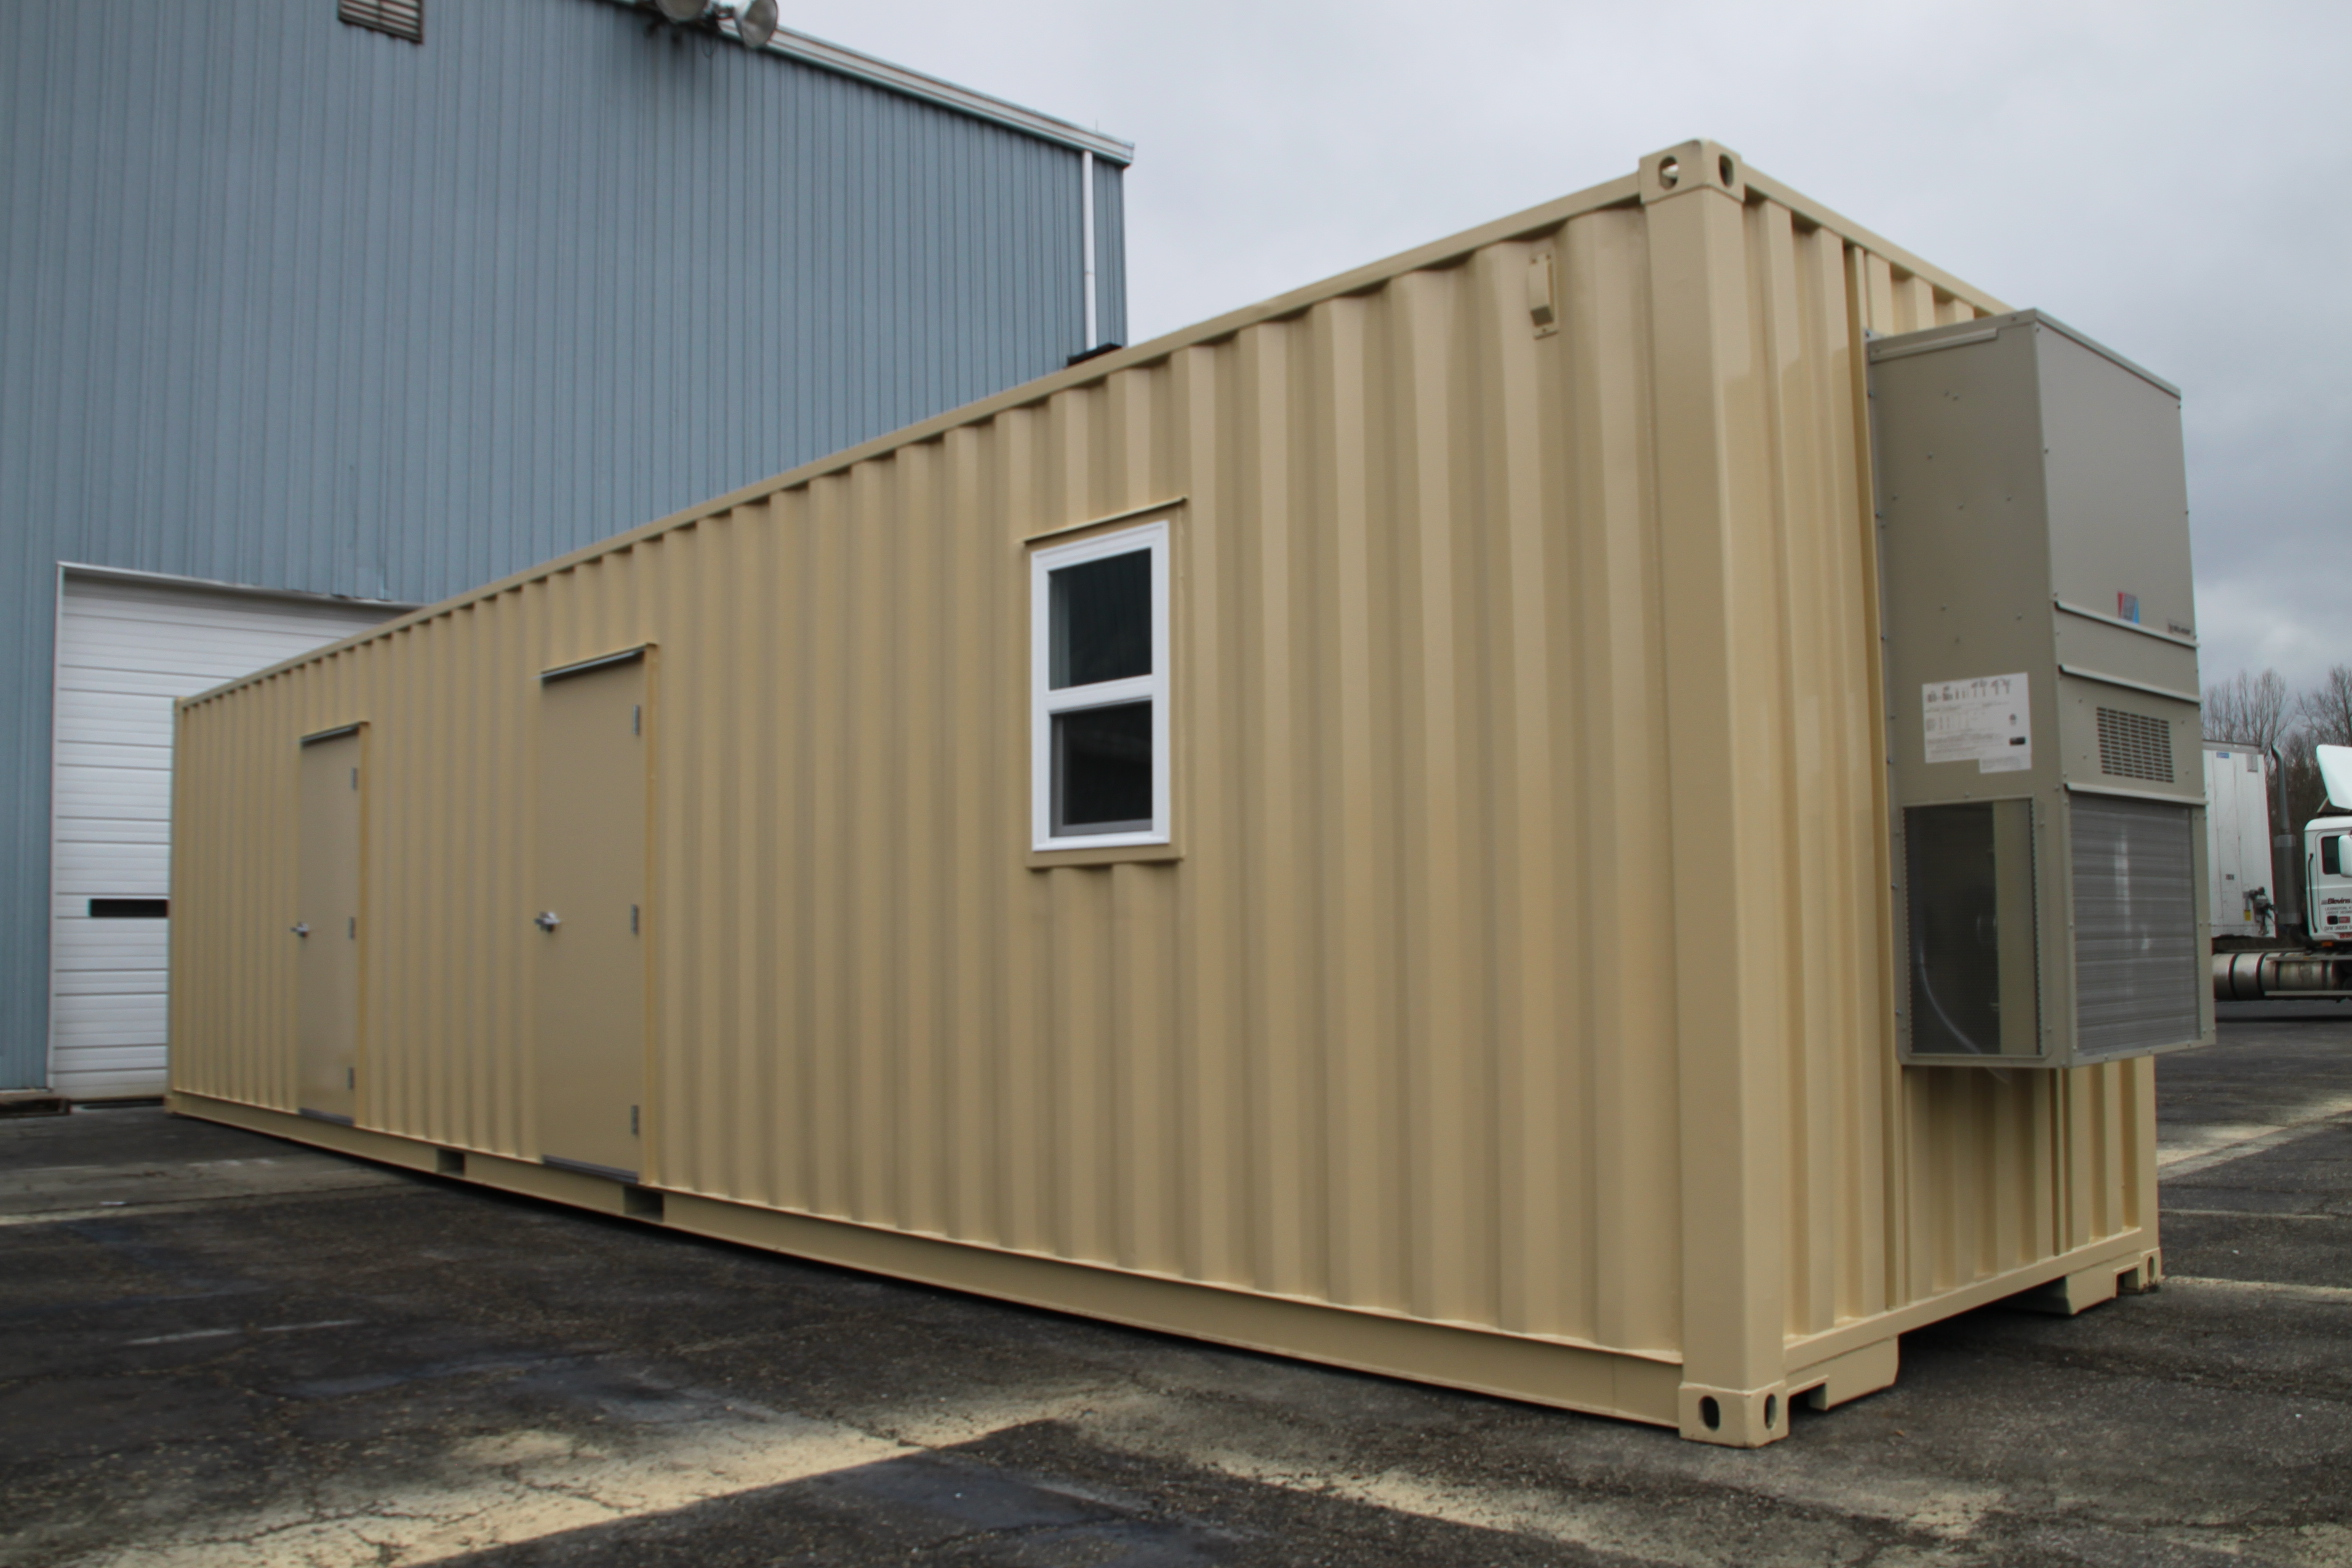 custom container modification,ISO Shipping container modifications,DropBox Inc,shipping container modifications